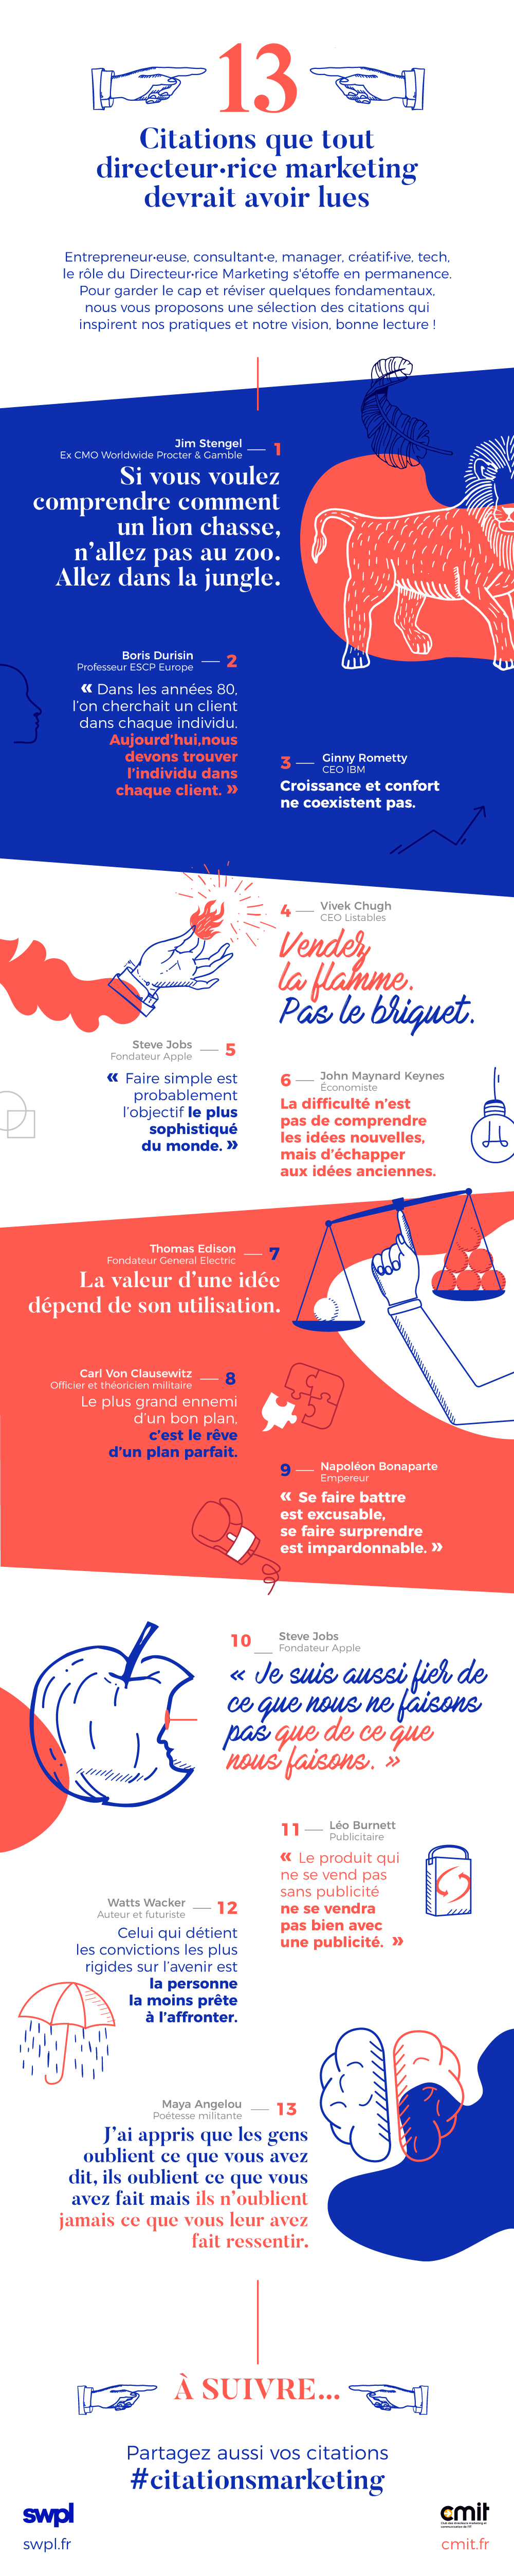 infographie citations marketing CMIT